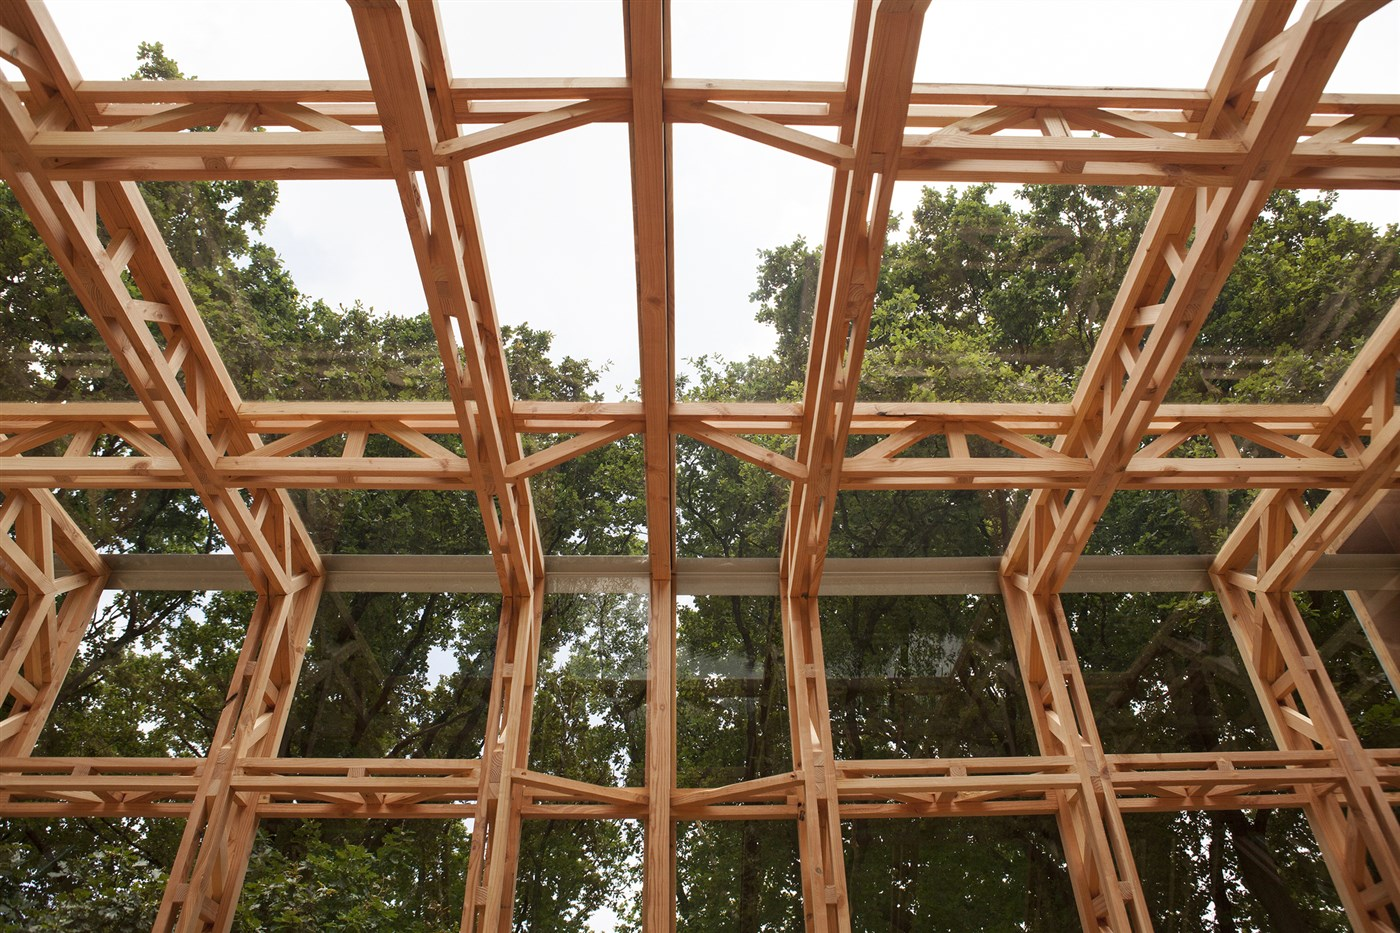 Wood dynamic garden house ceiling